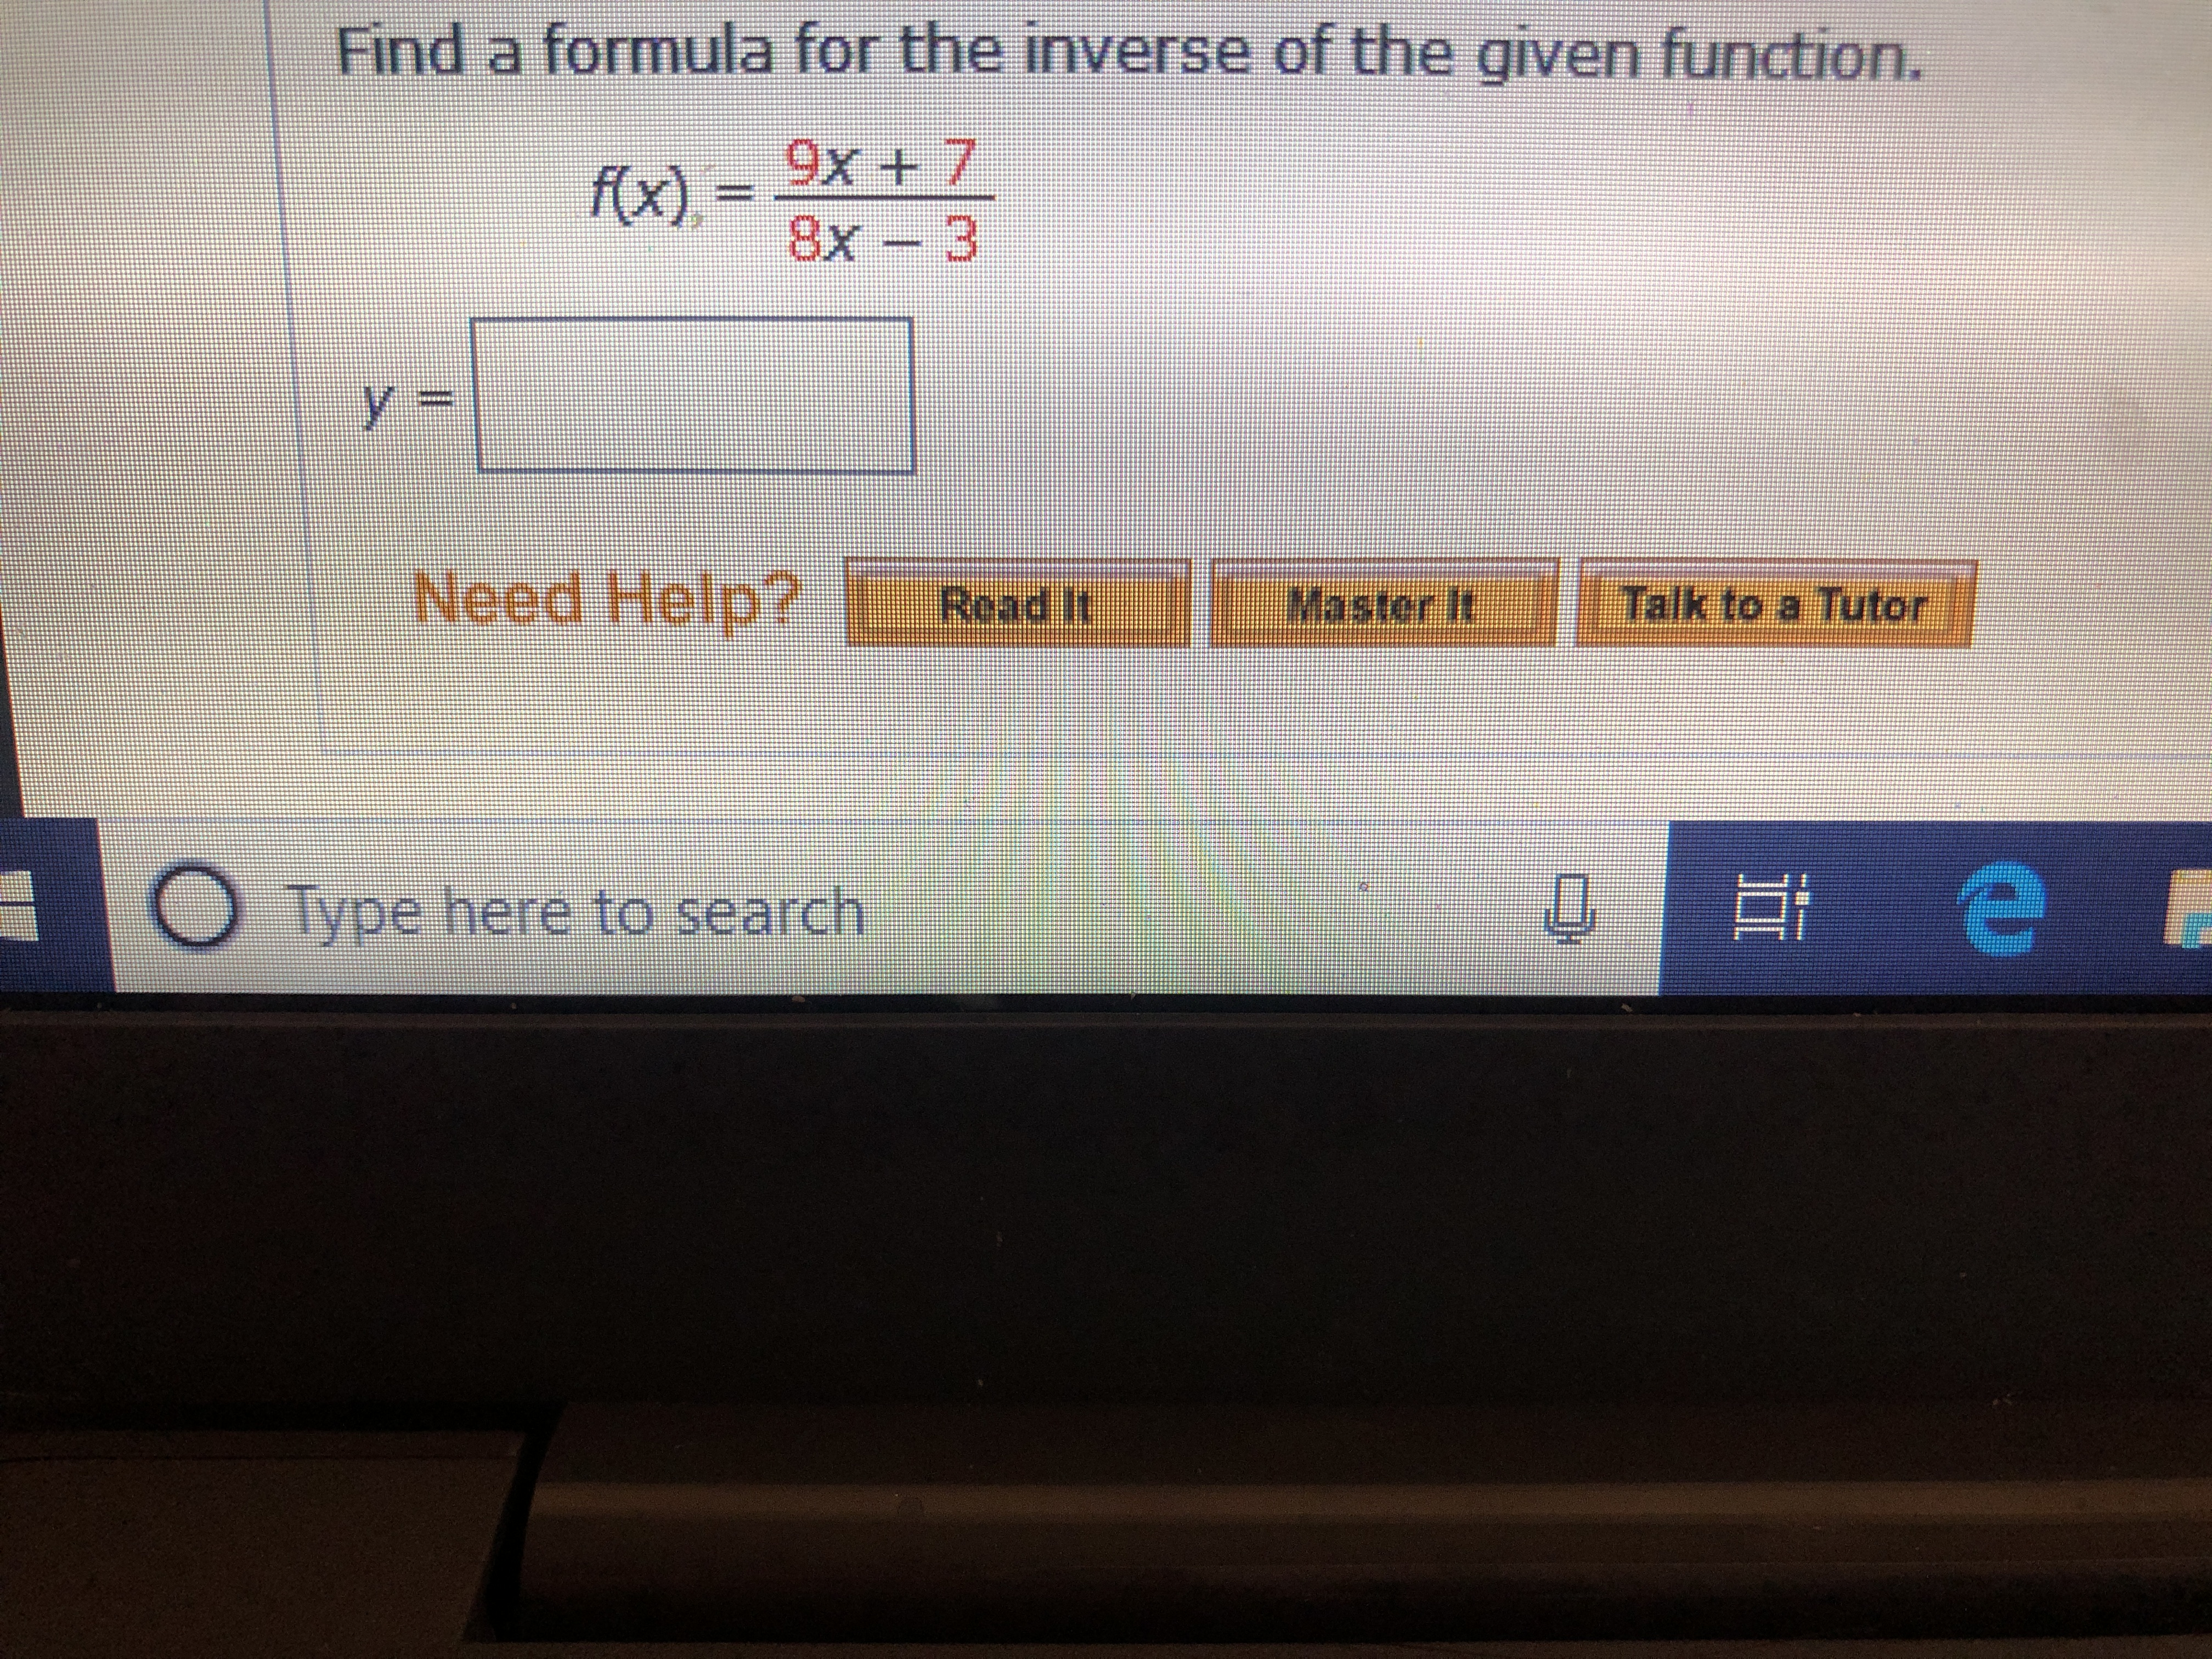 Find a formula for the inverse of the given function. f(x) 9x 7 8x 3 - ym Need Help? Master It Talk to a Tutor Read It е в lype here to search